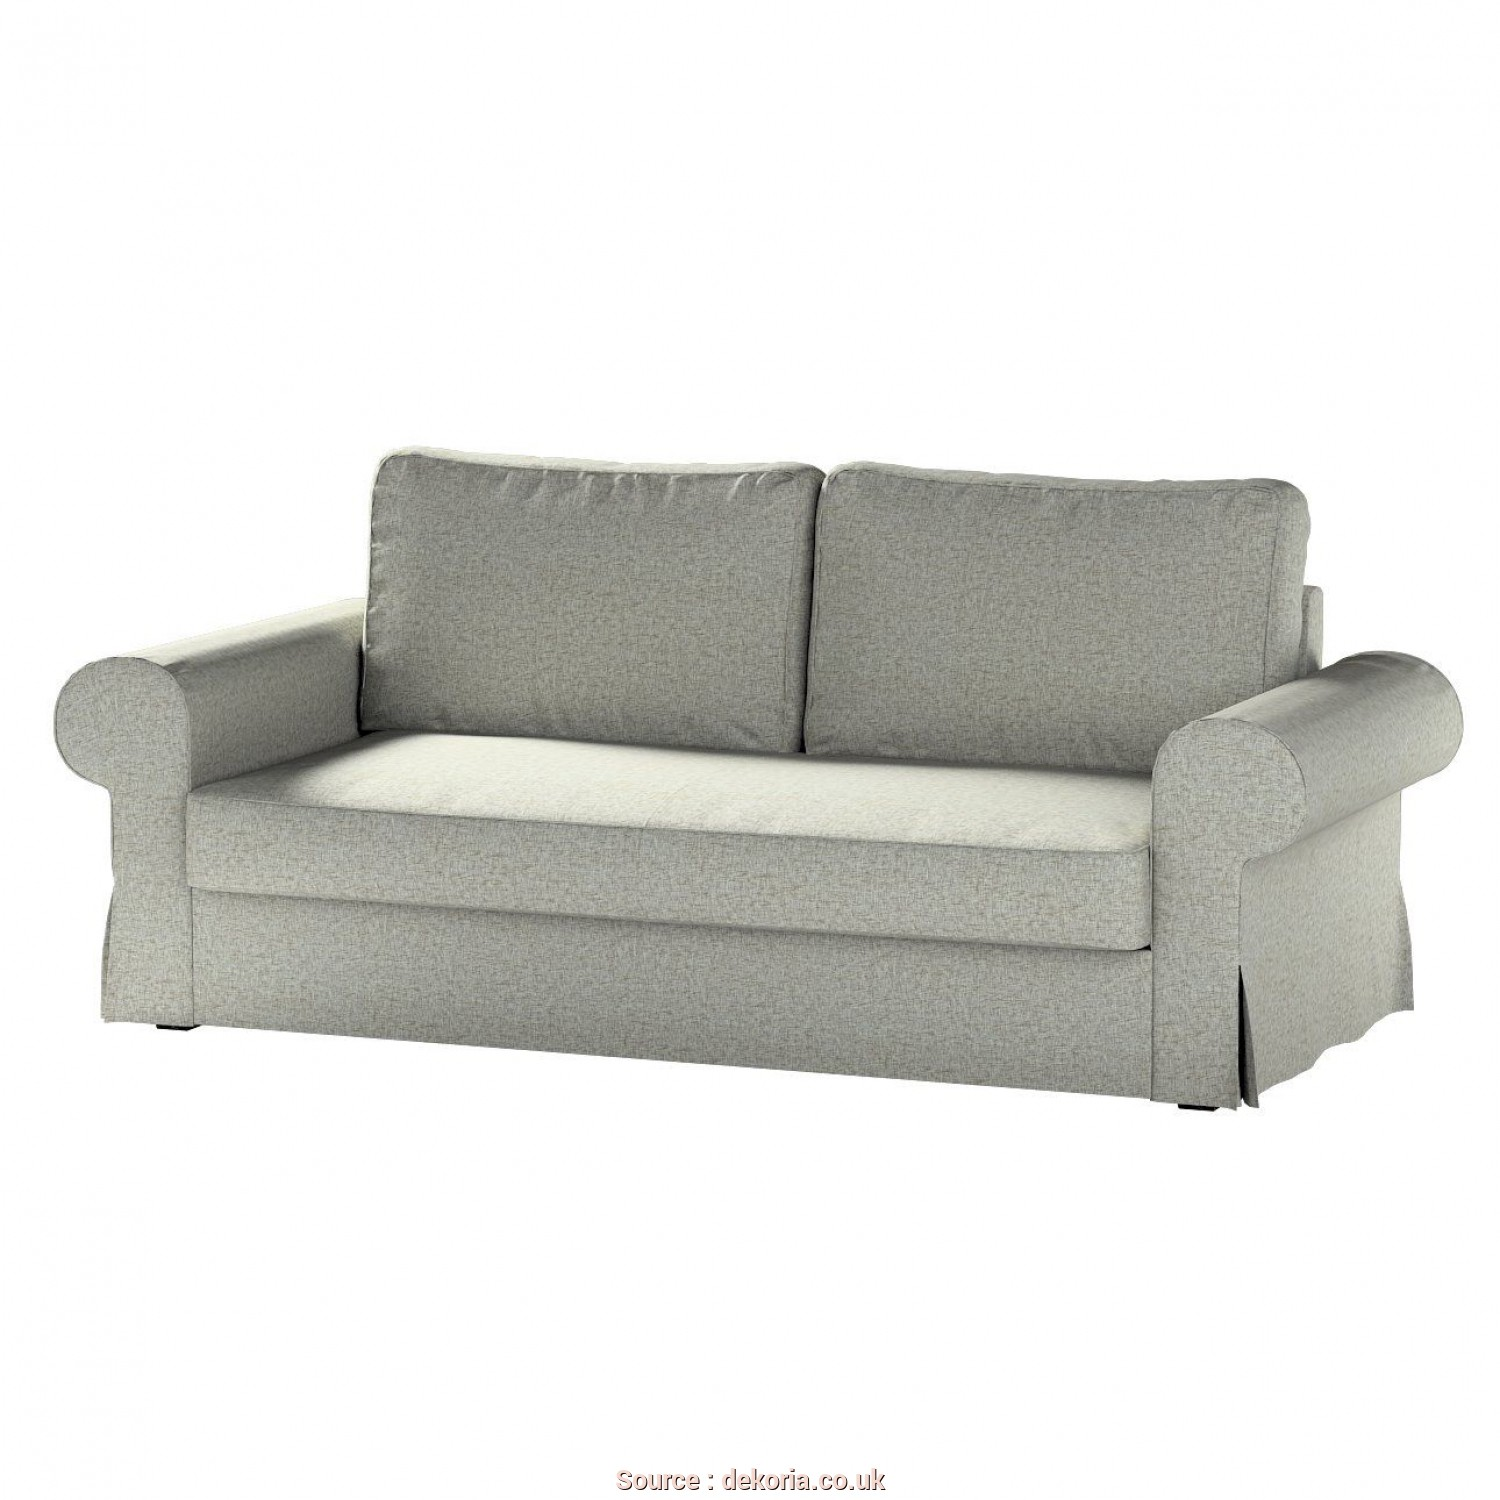 Ikea Backabro Bettsofa, Stupefacente Backabro 3-Seat Sofa, Cover In Collection Living, Fabric: 106-96